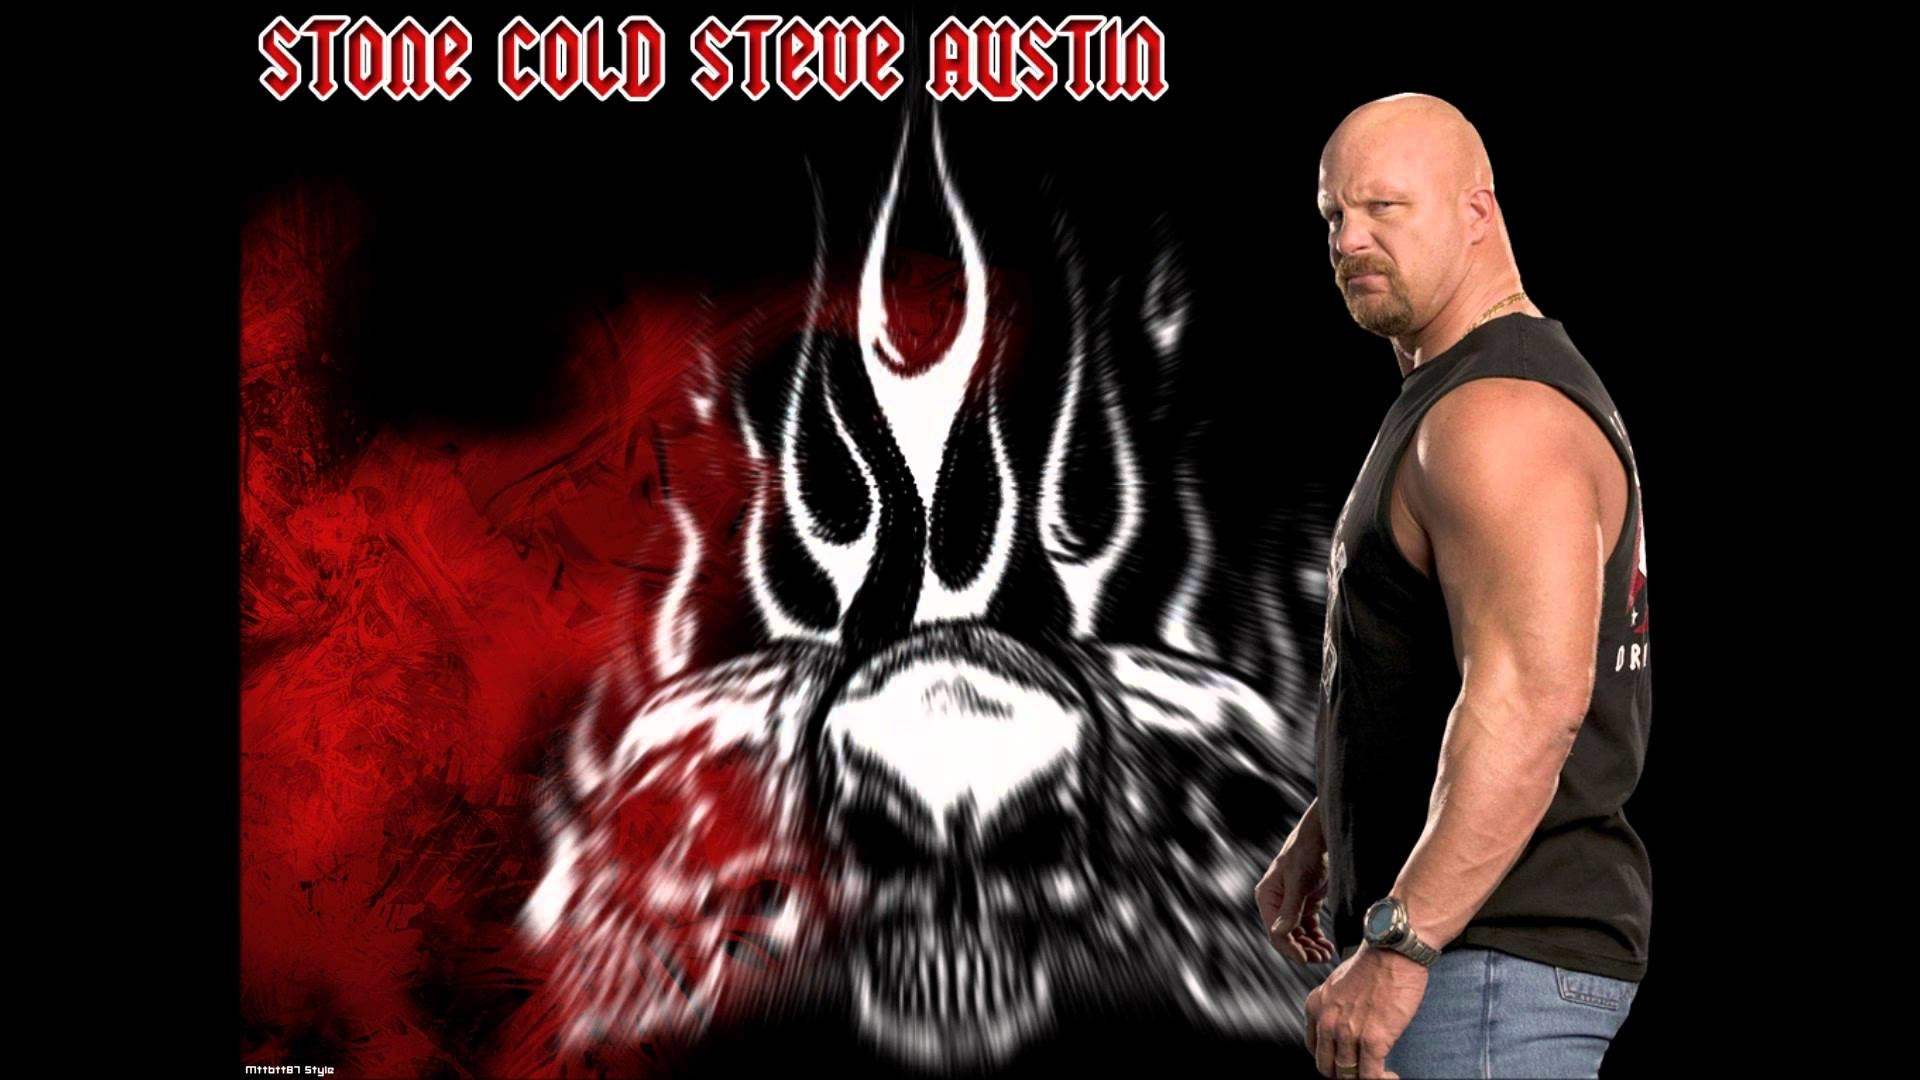 (HD) Stone Cold Steve Austin 3rd Theme Song – Glass Shatters with Download  Link